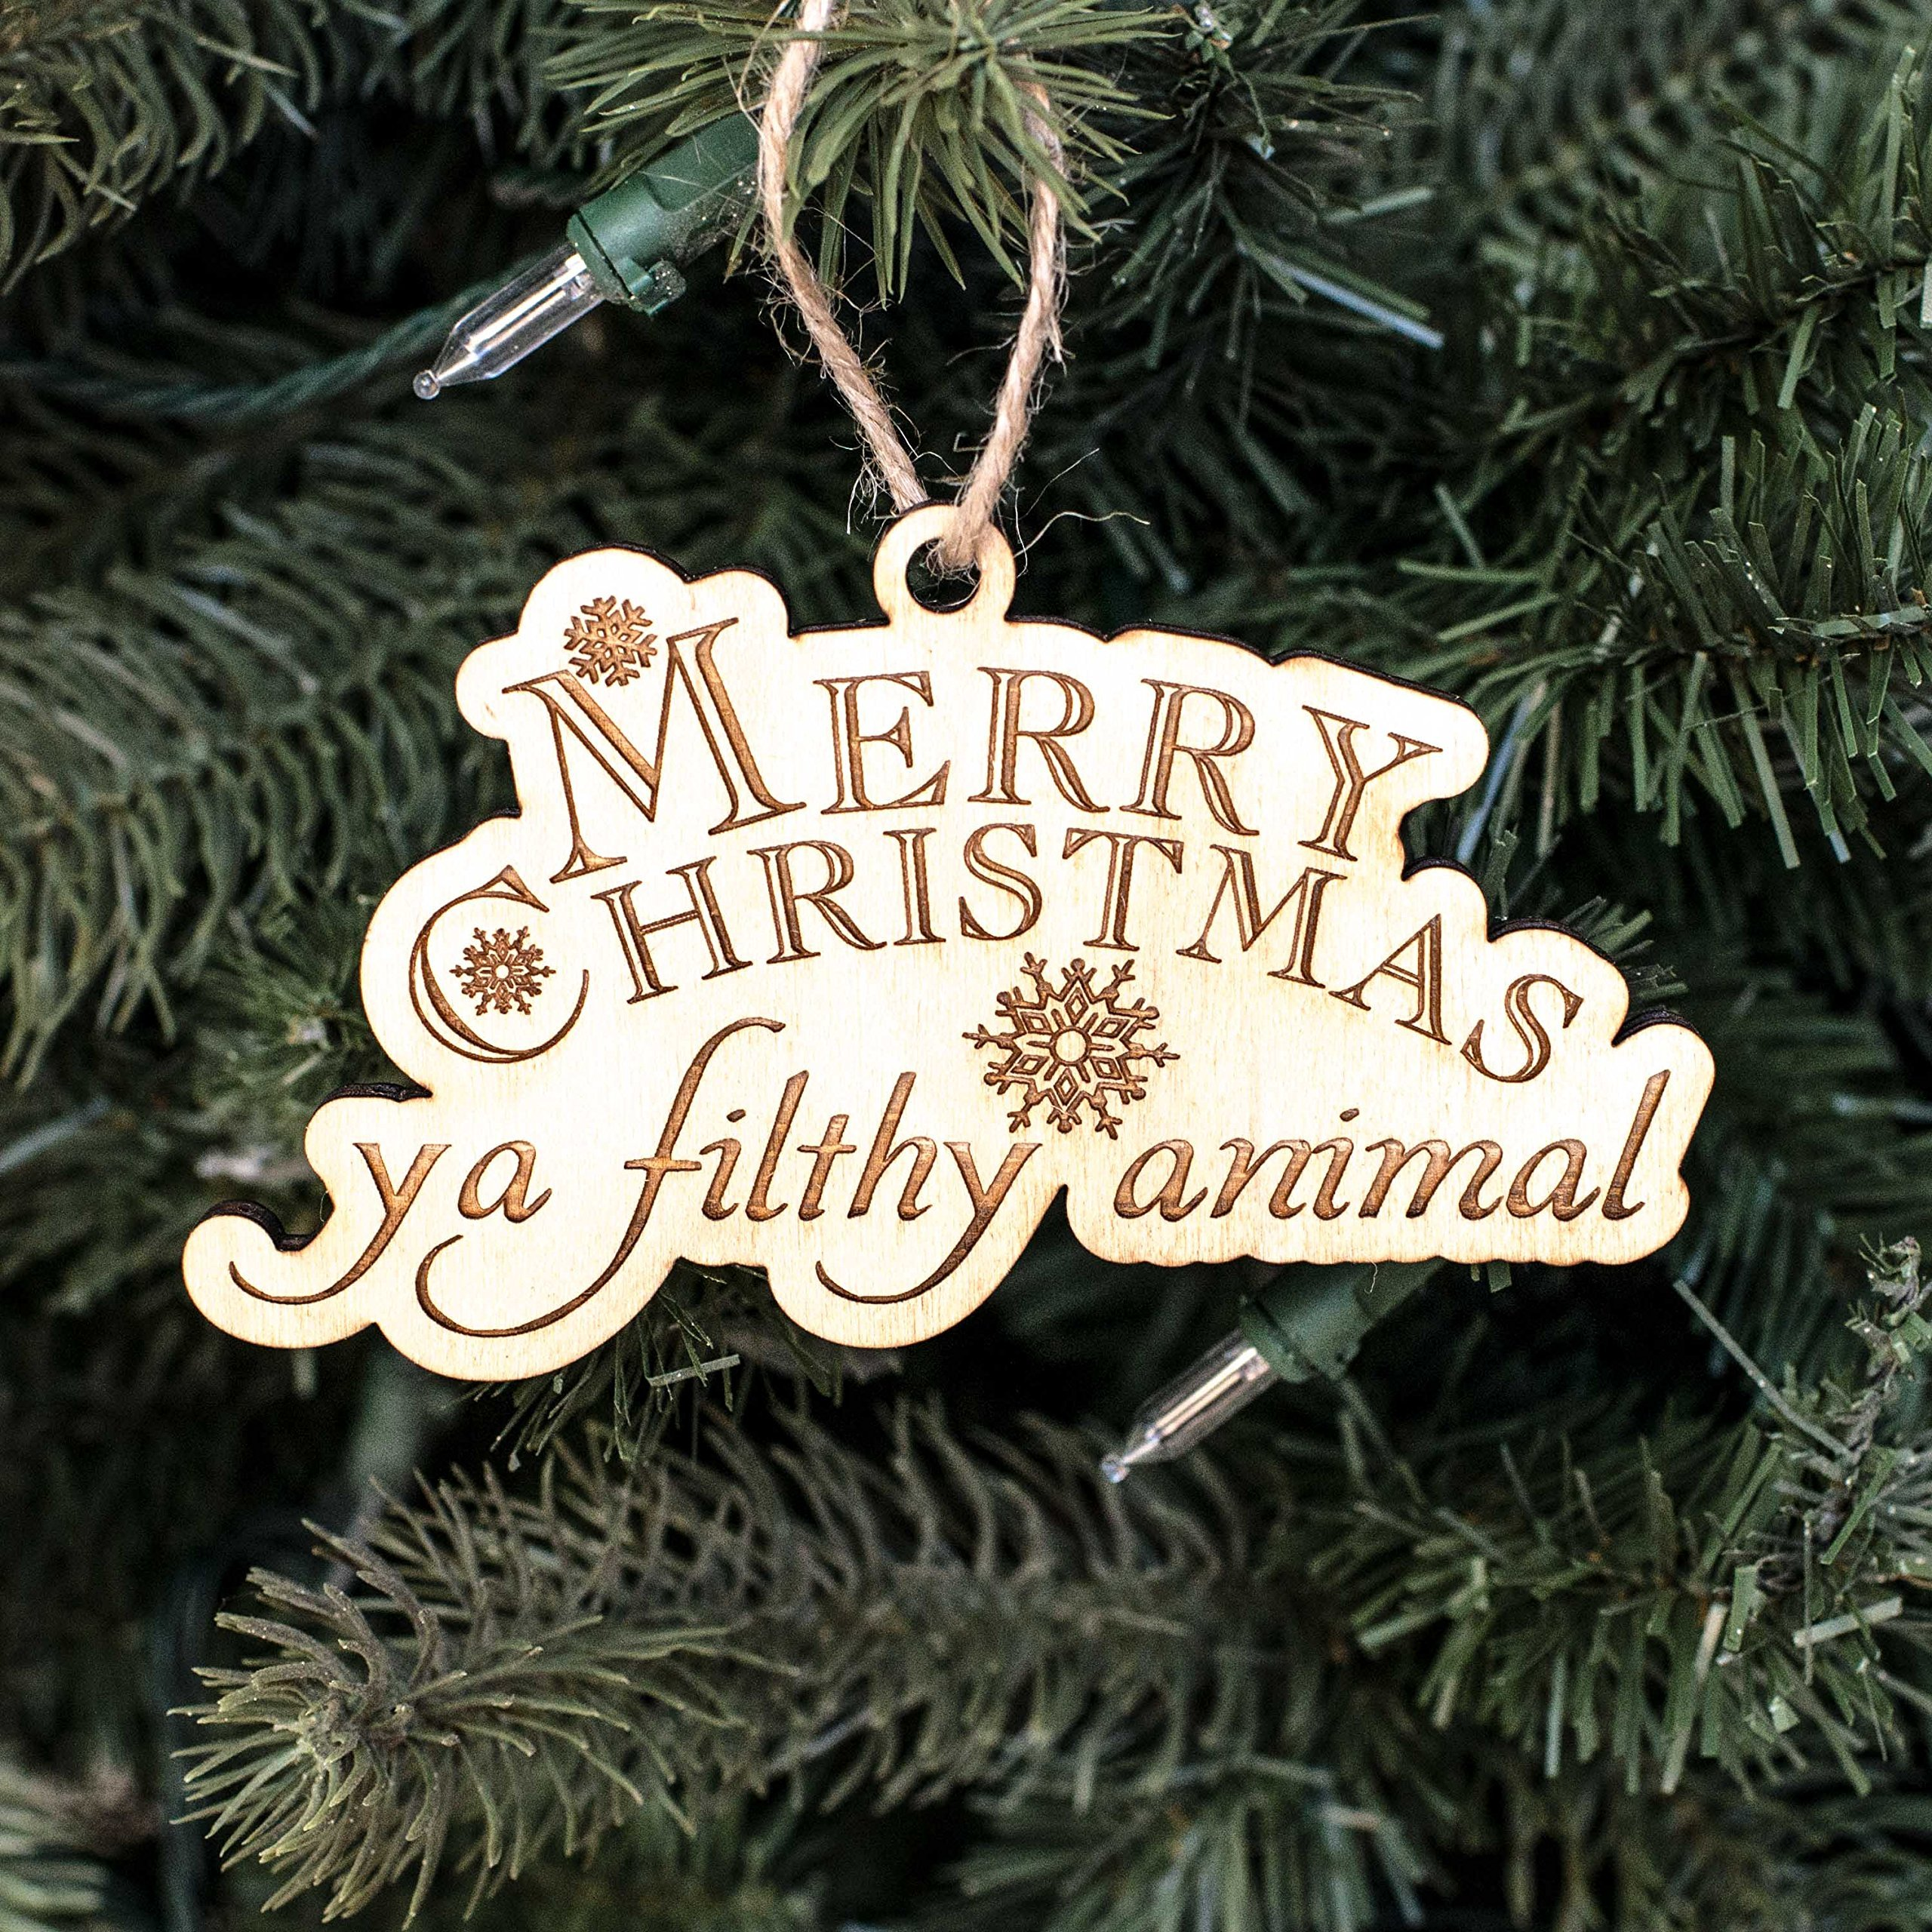 Ornament - Merry Christmas Ya Filthy Animal - Raw Wood 3x5in by Hip Flask Plus